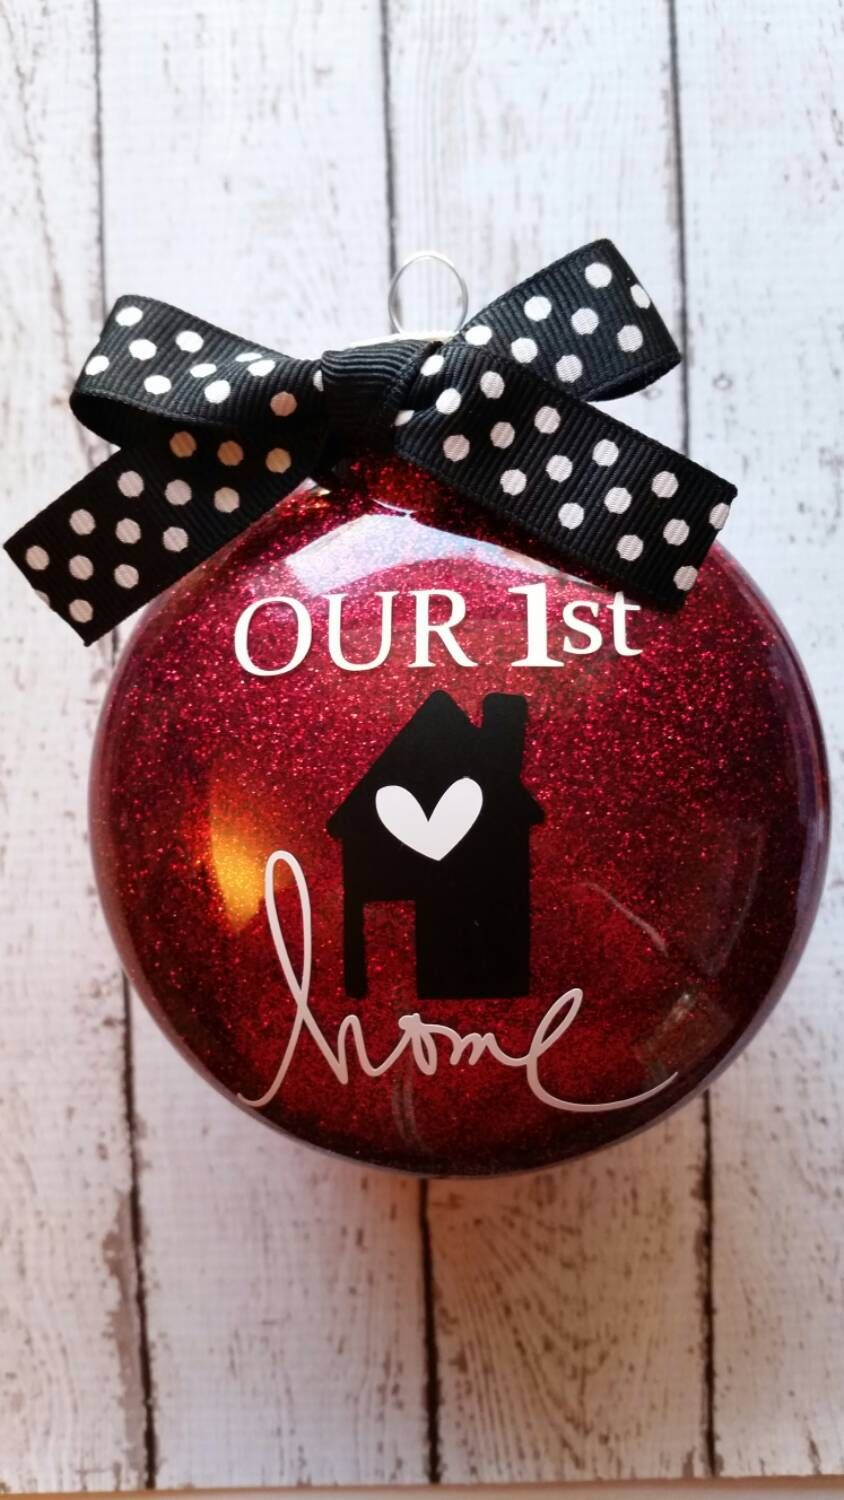 Our First Home Ornament New Christmas Housewarming Gift